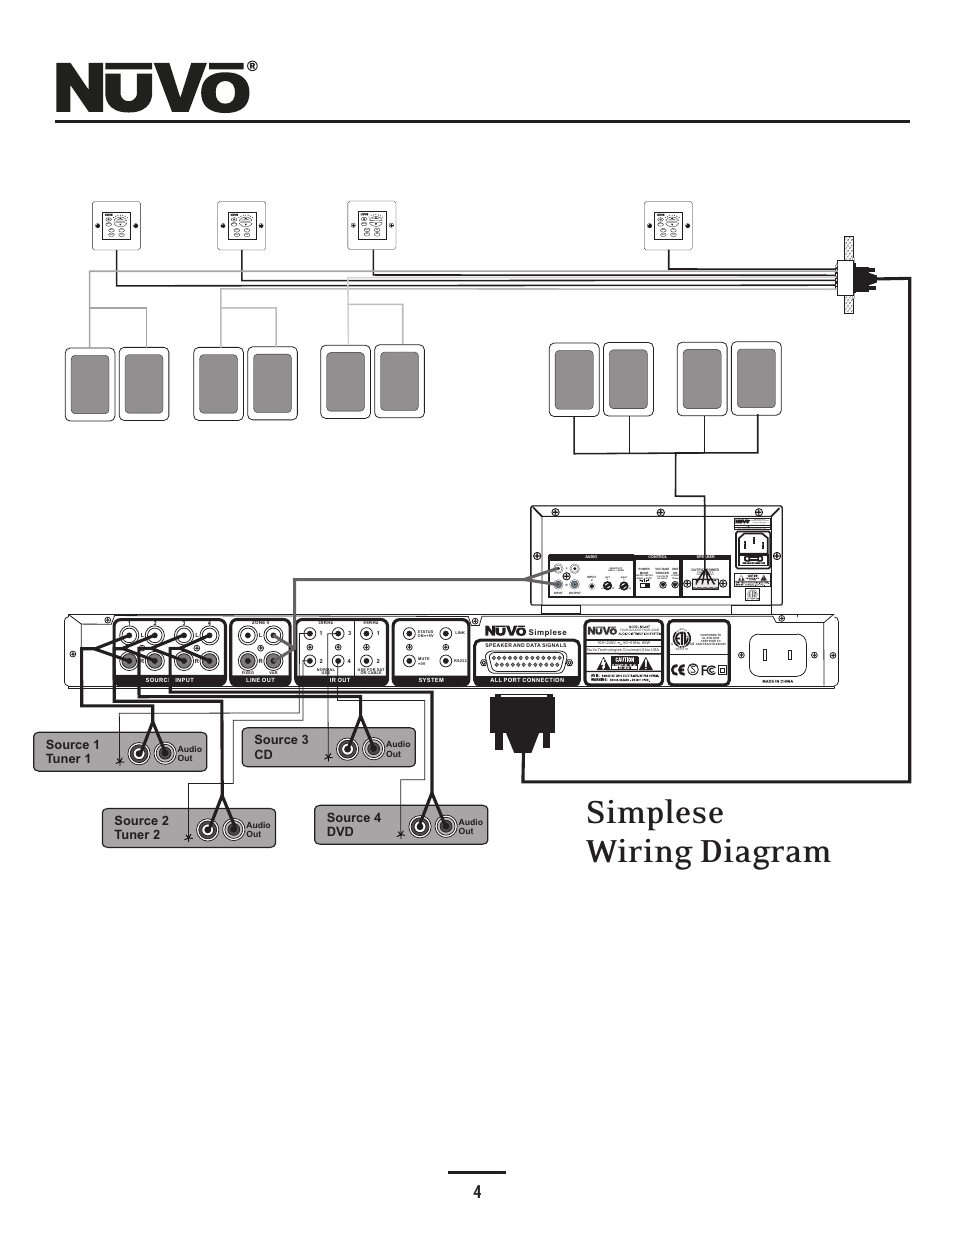 Wiring Diagram  Simplese Wiring Diagram  Use Only With